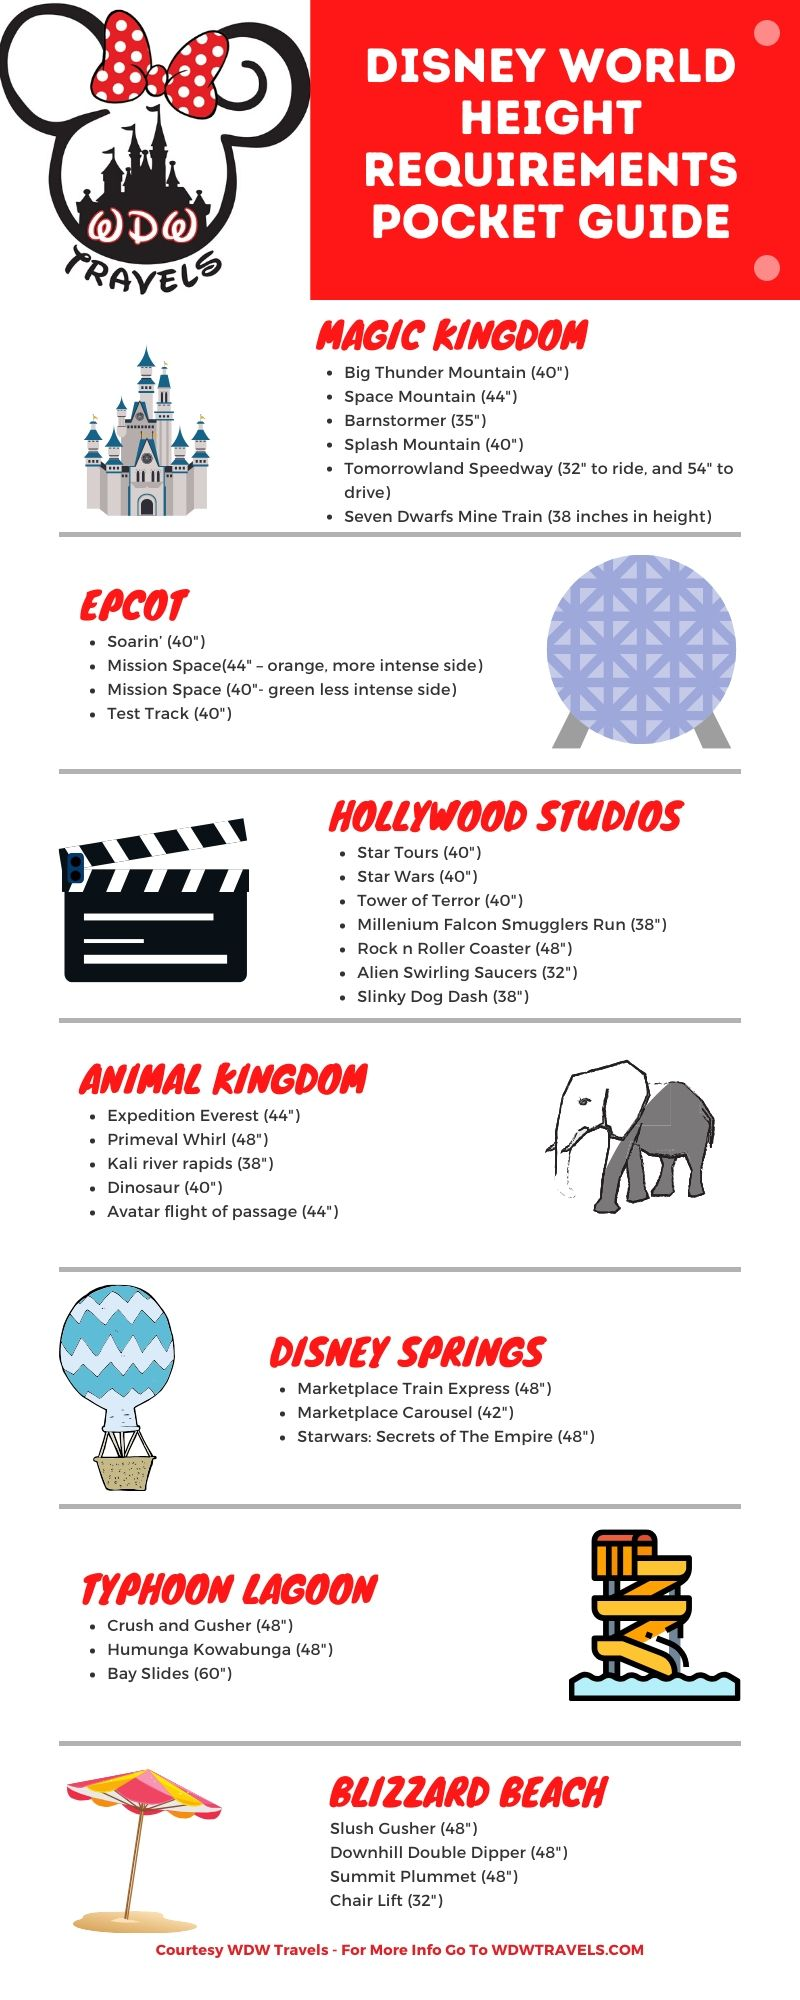 disney world height requirements infographic